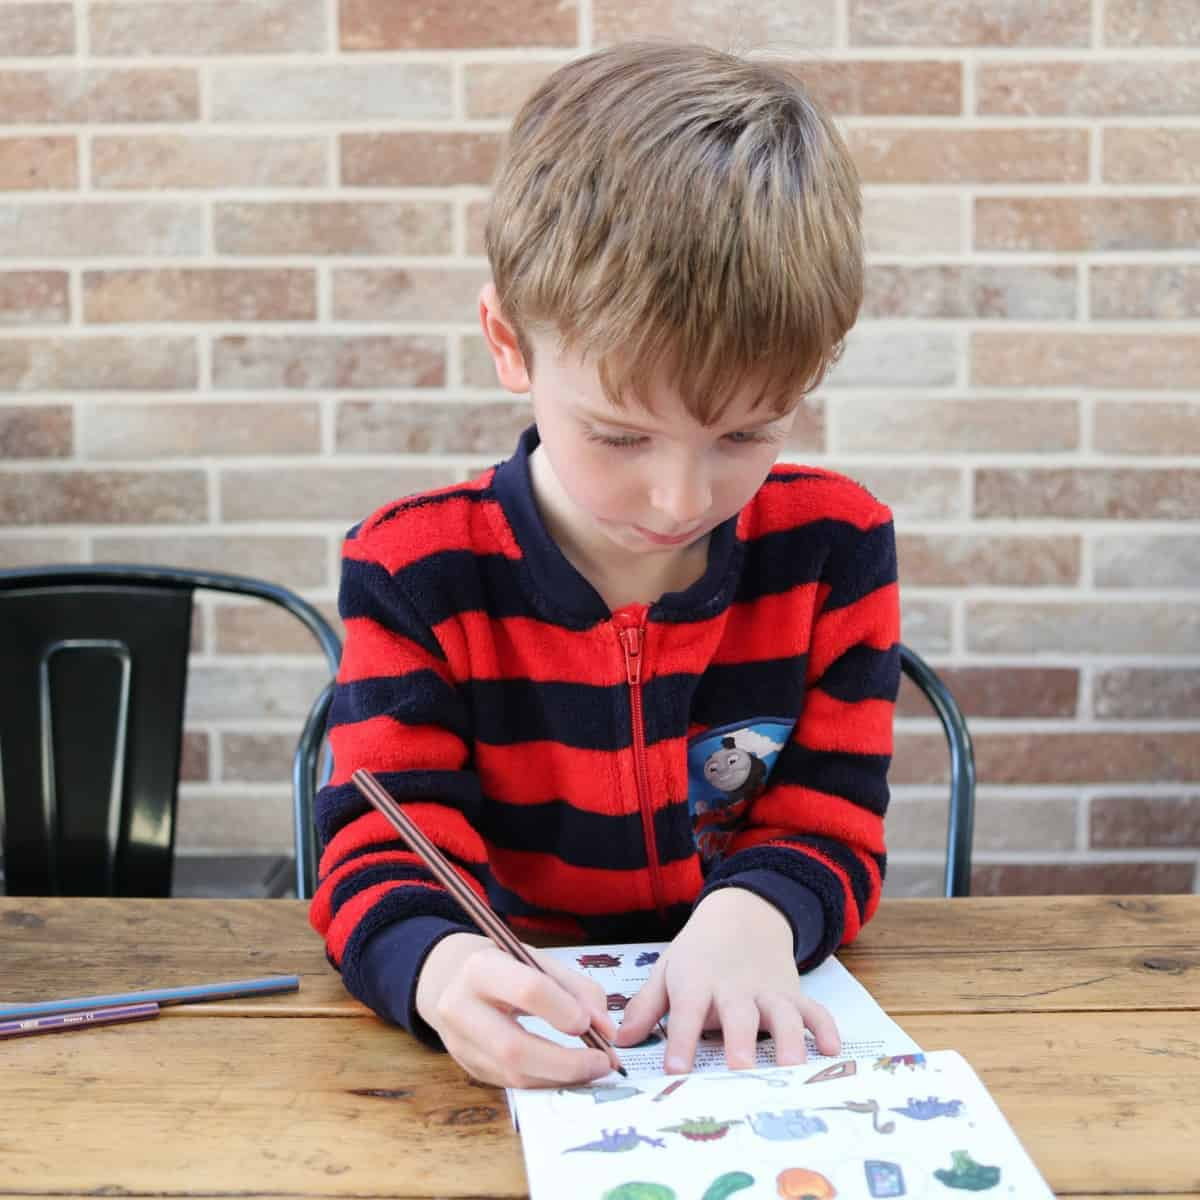 Introducing the Mighty Monster Fun Activity Pad from Puzzler